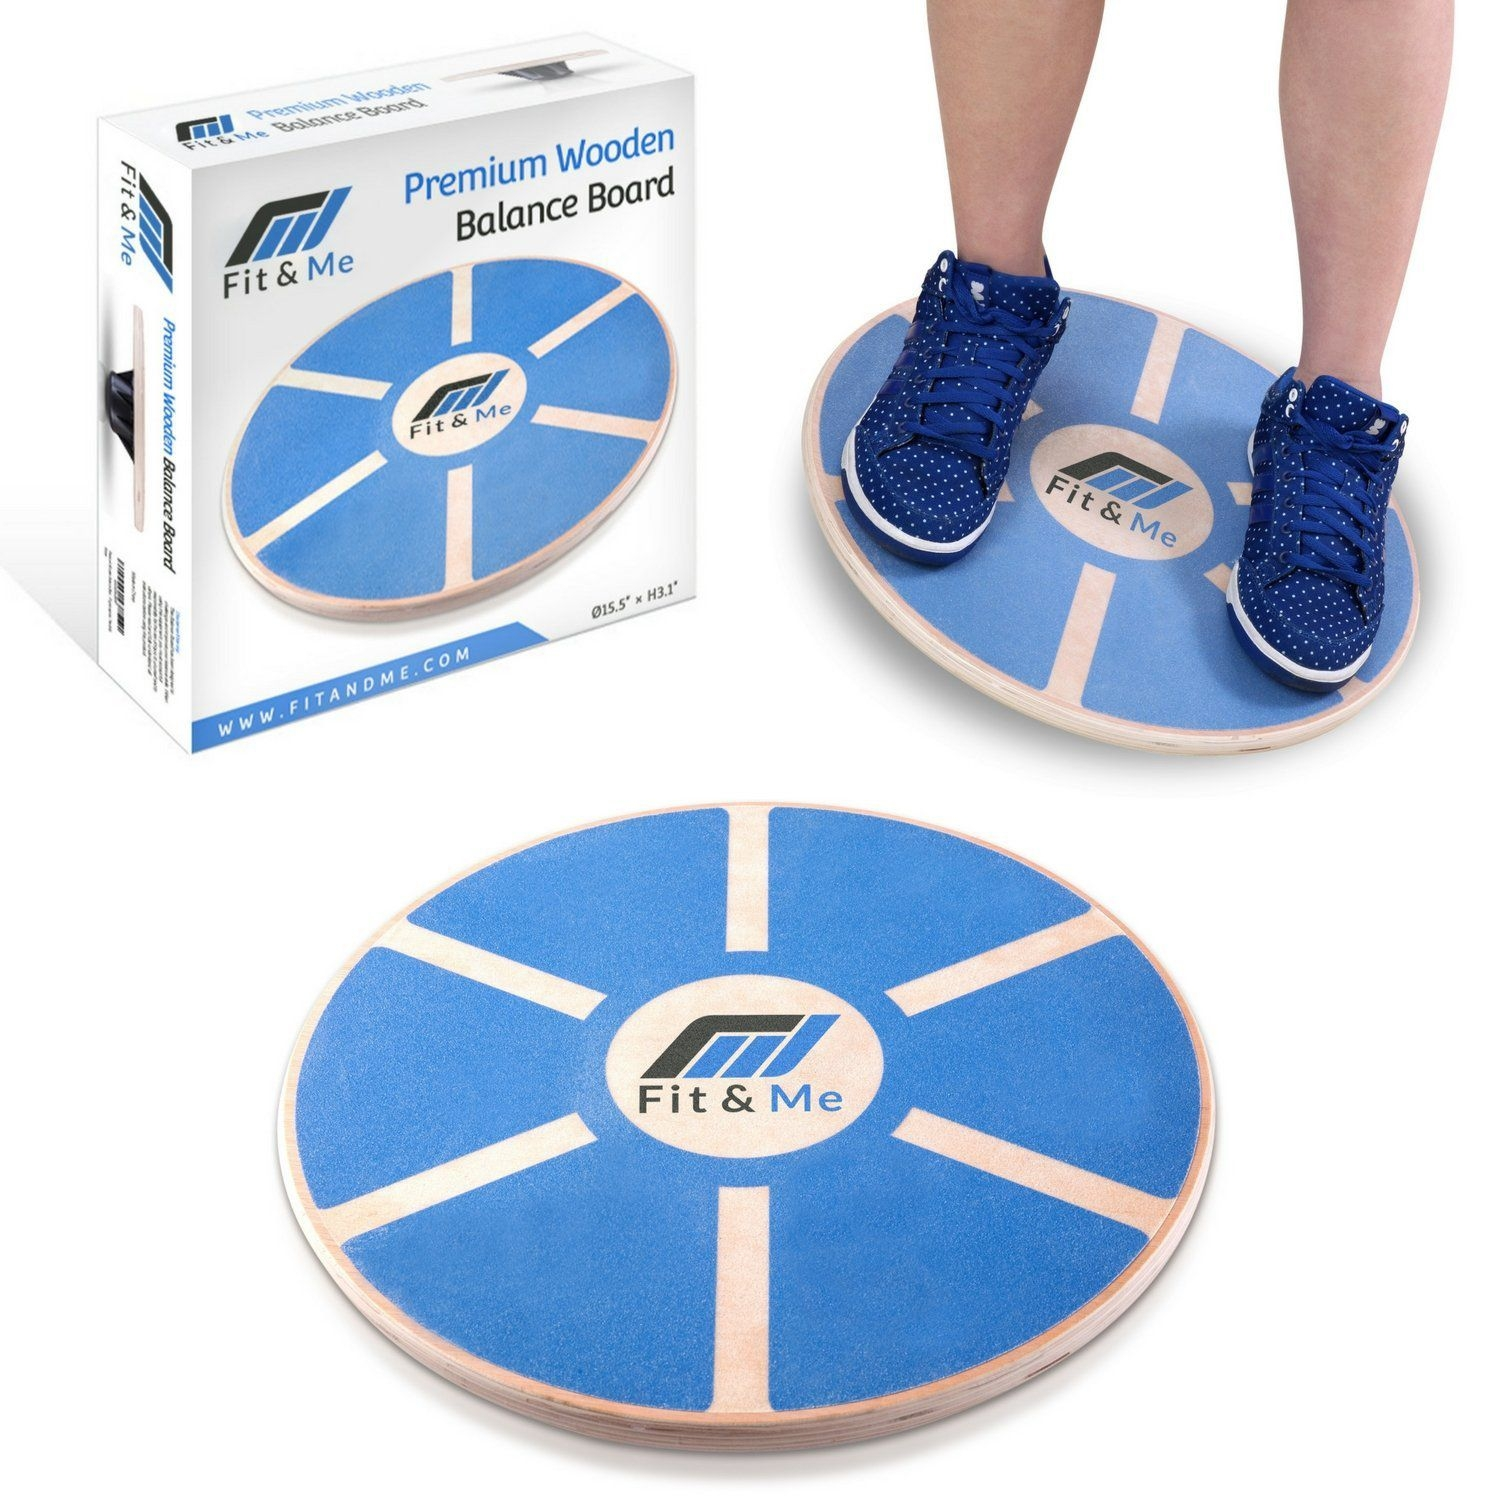 Balance Board Exercises For Back: Fit&Me Wooden Wobble Balance Board Video Exercises Best Offer